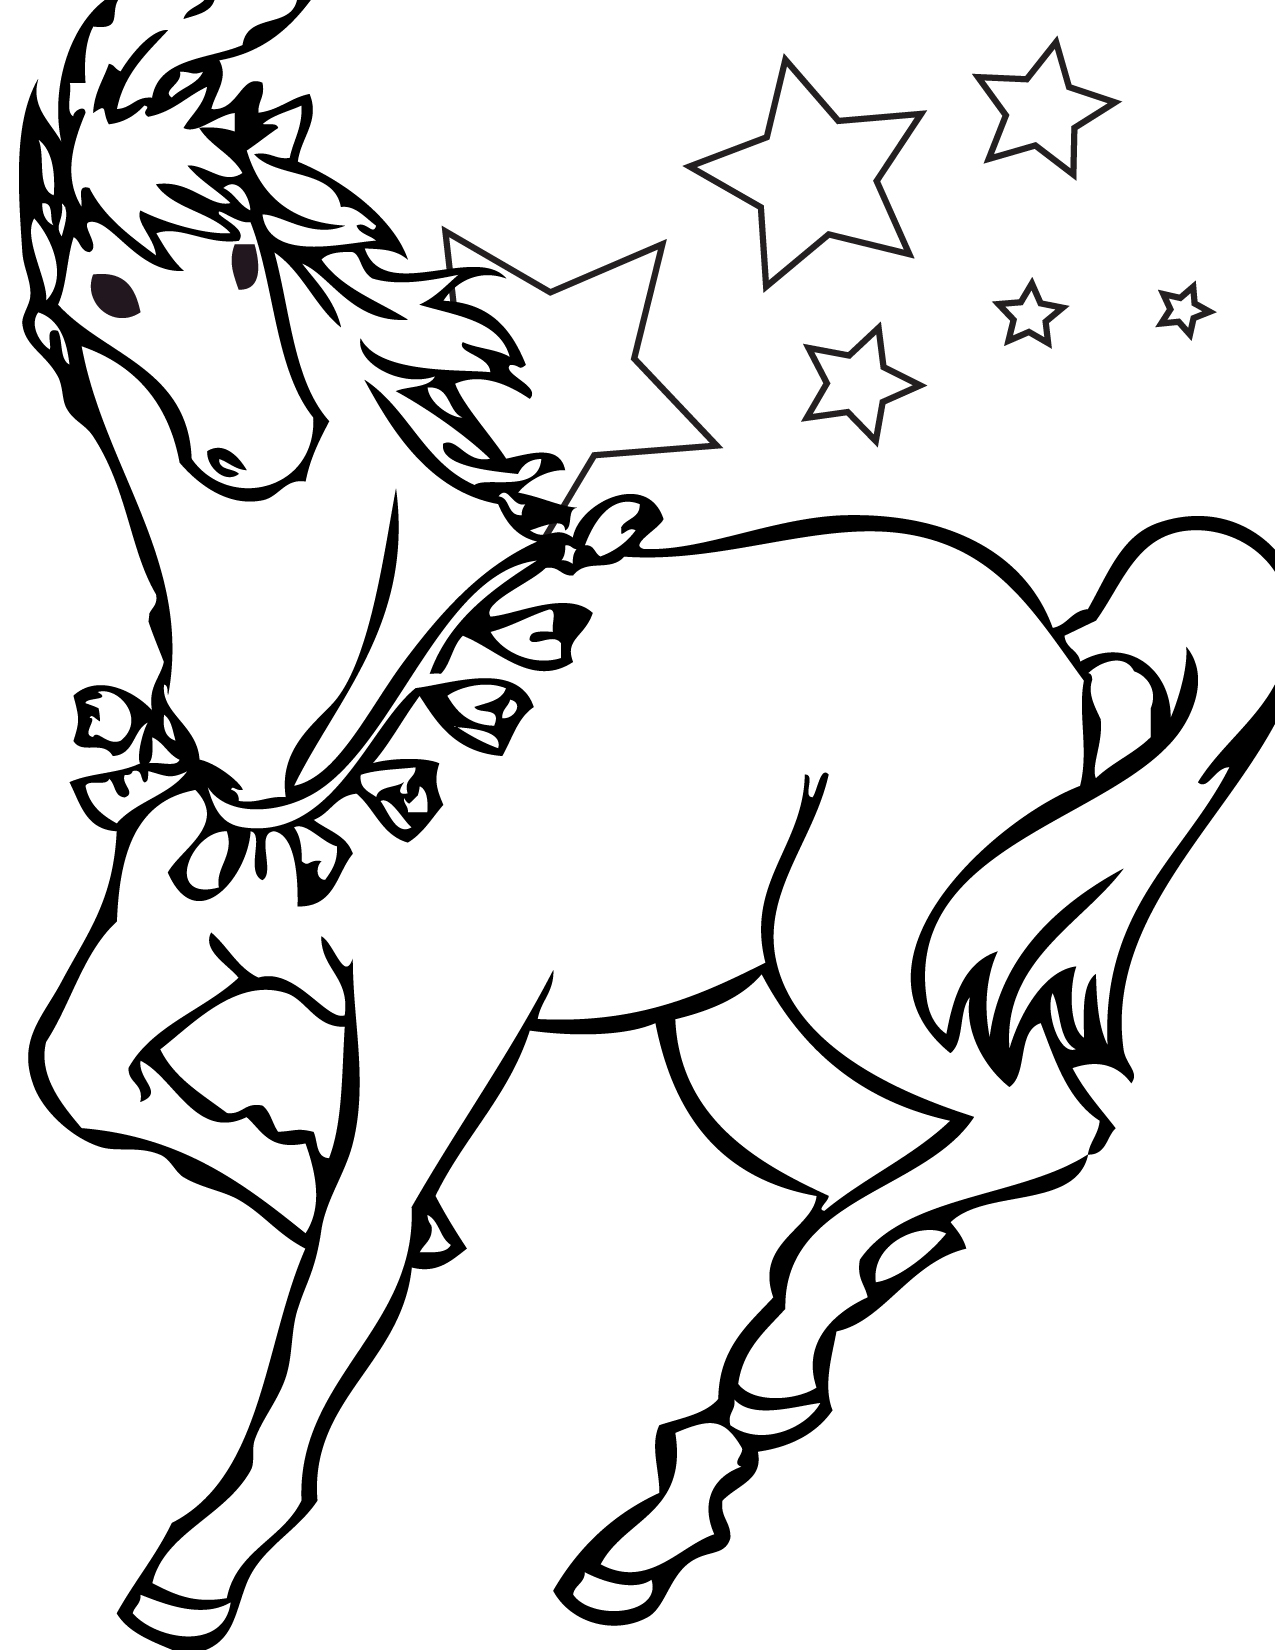 1275x1650 Trend Printable Coloring Pages Of Horses 53 For Seasonal Colouring